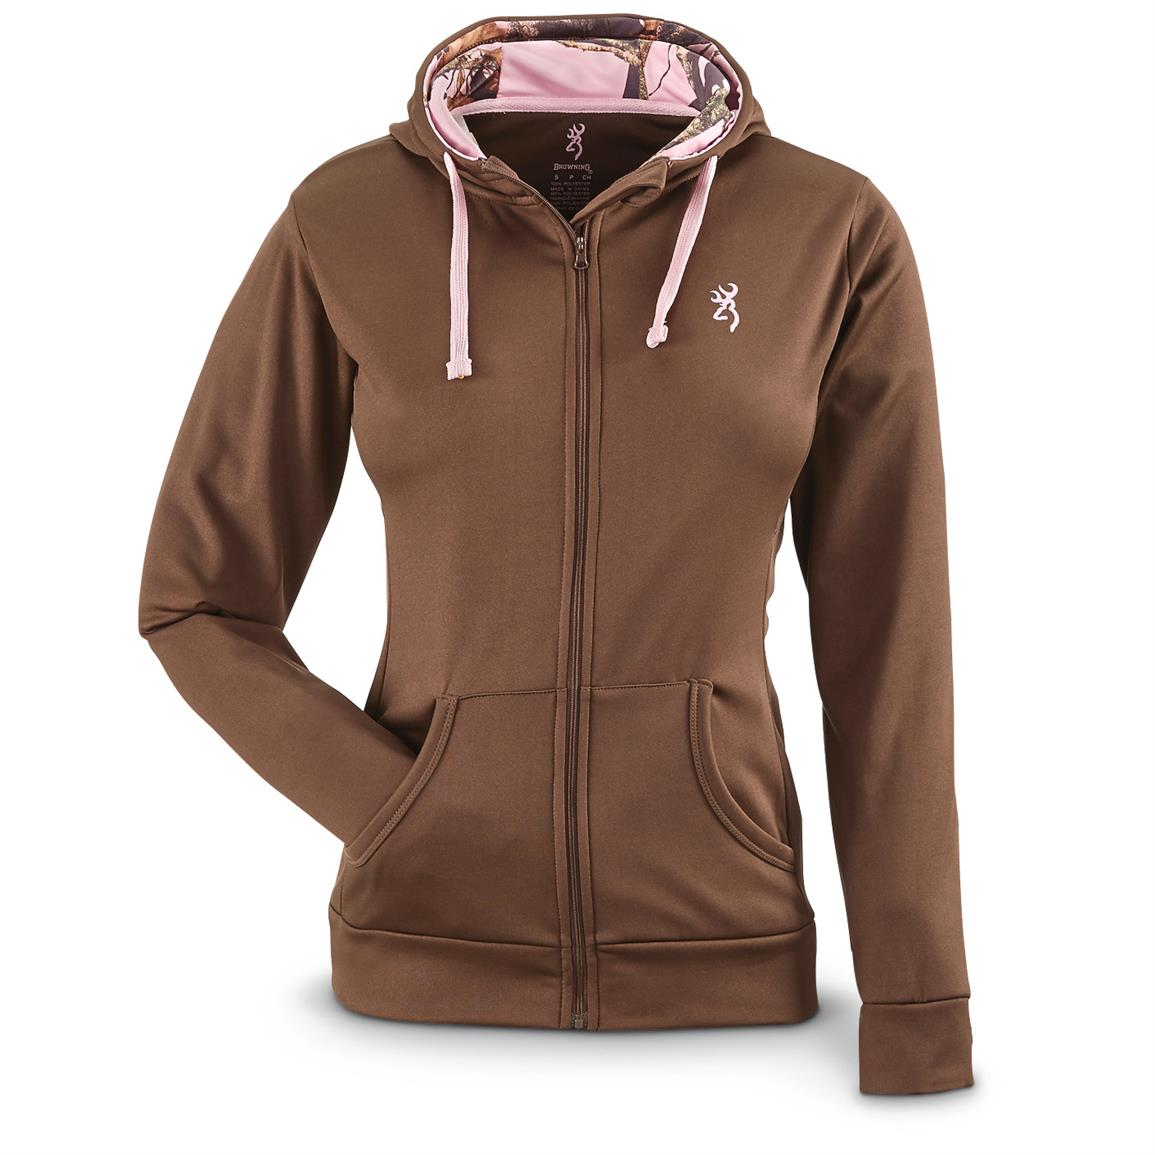 Browning Women's Performance Full-Zip Hoodie, Chocolate